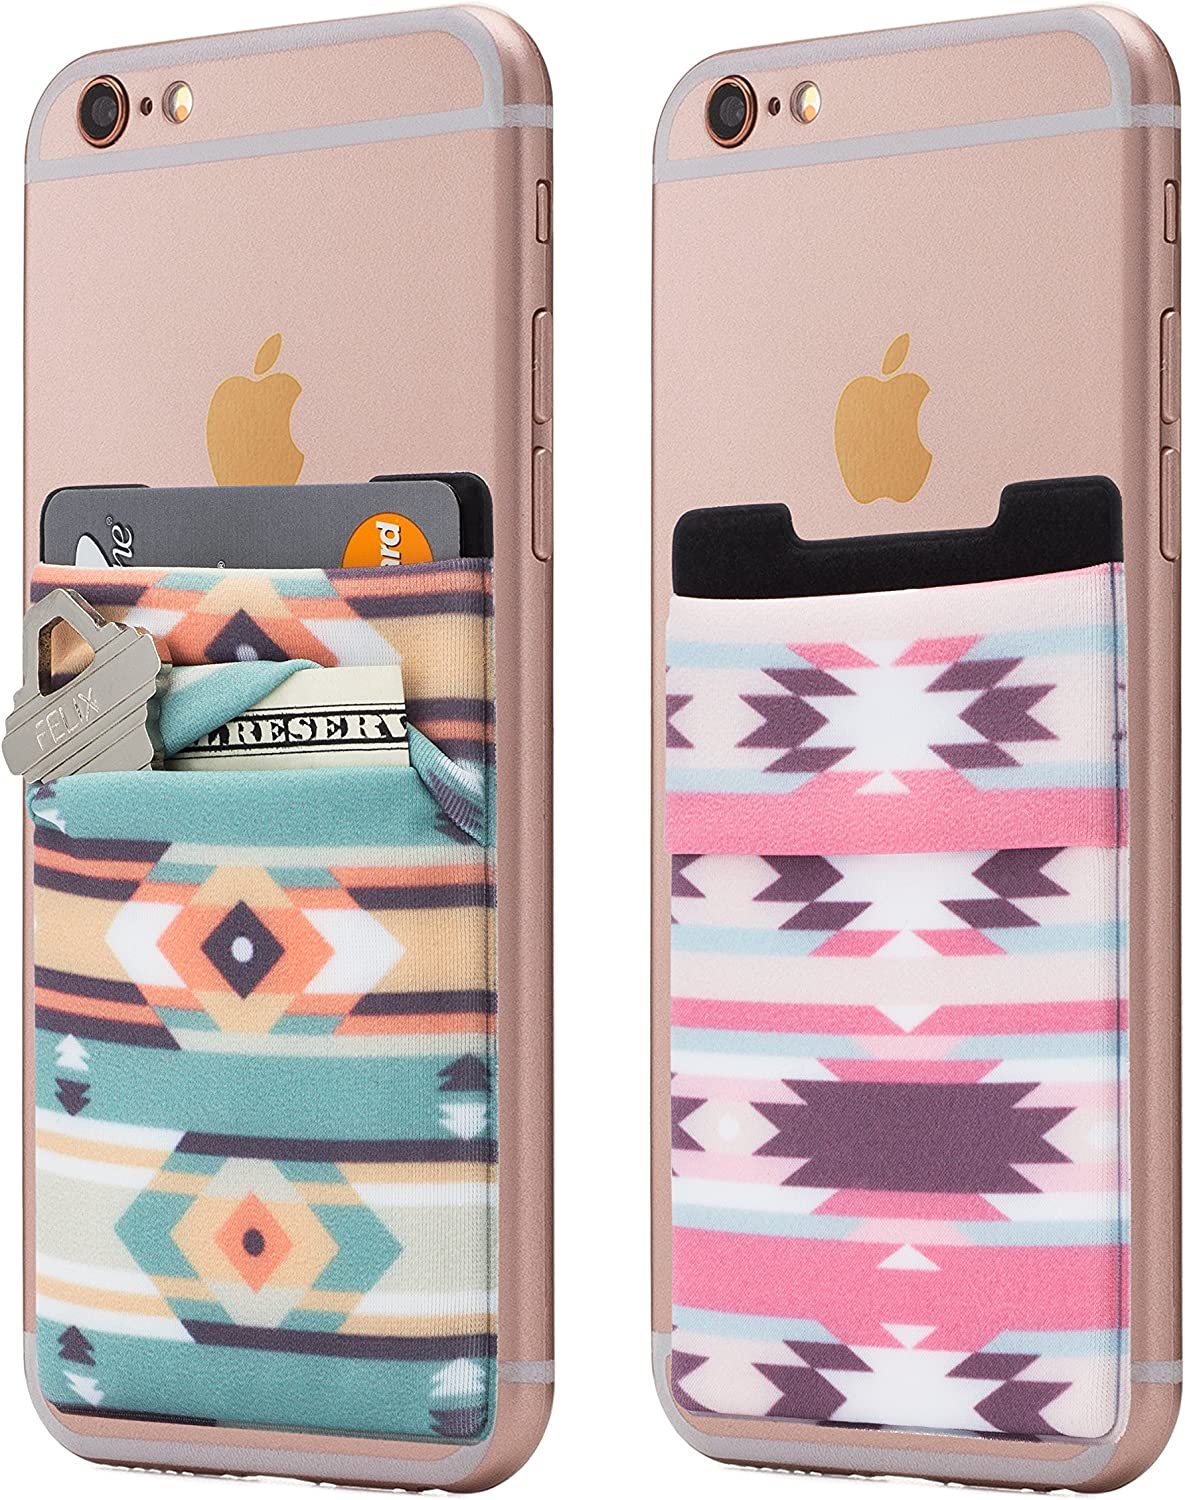 (Two) Stretchy Cell Phone Stick On Wallet Card Holder Phone Pocket for iPhone, Android and All Smartphones. (Aztec)